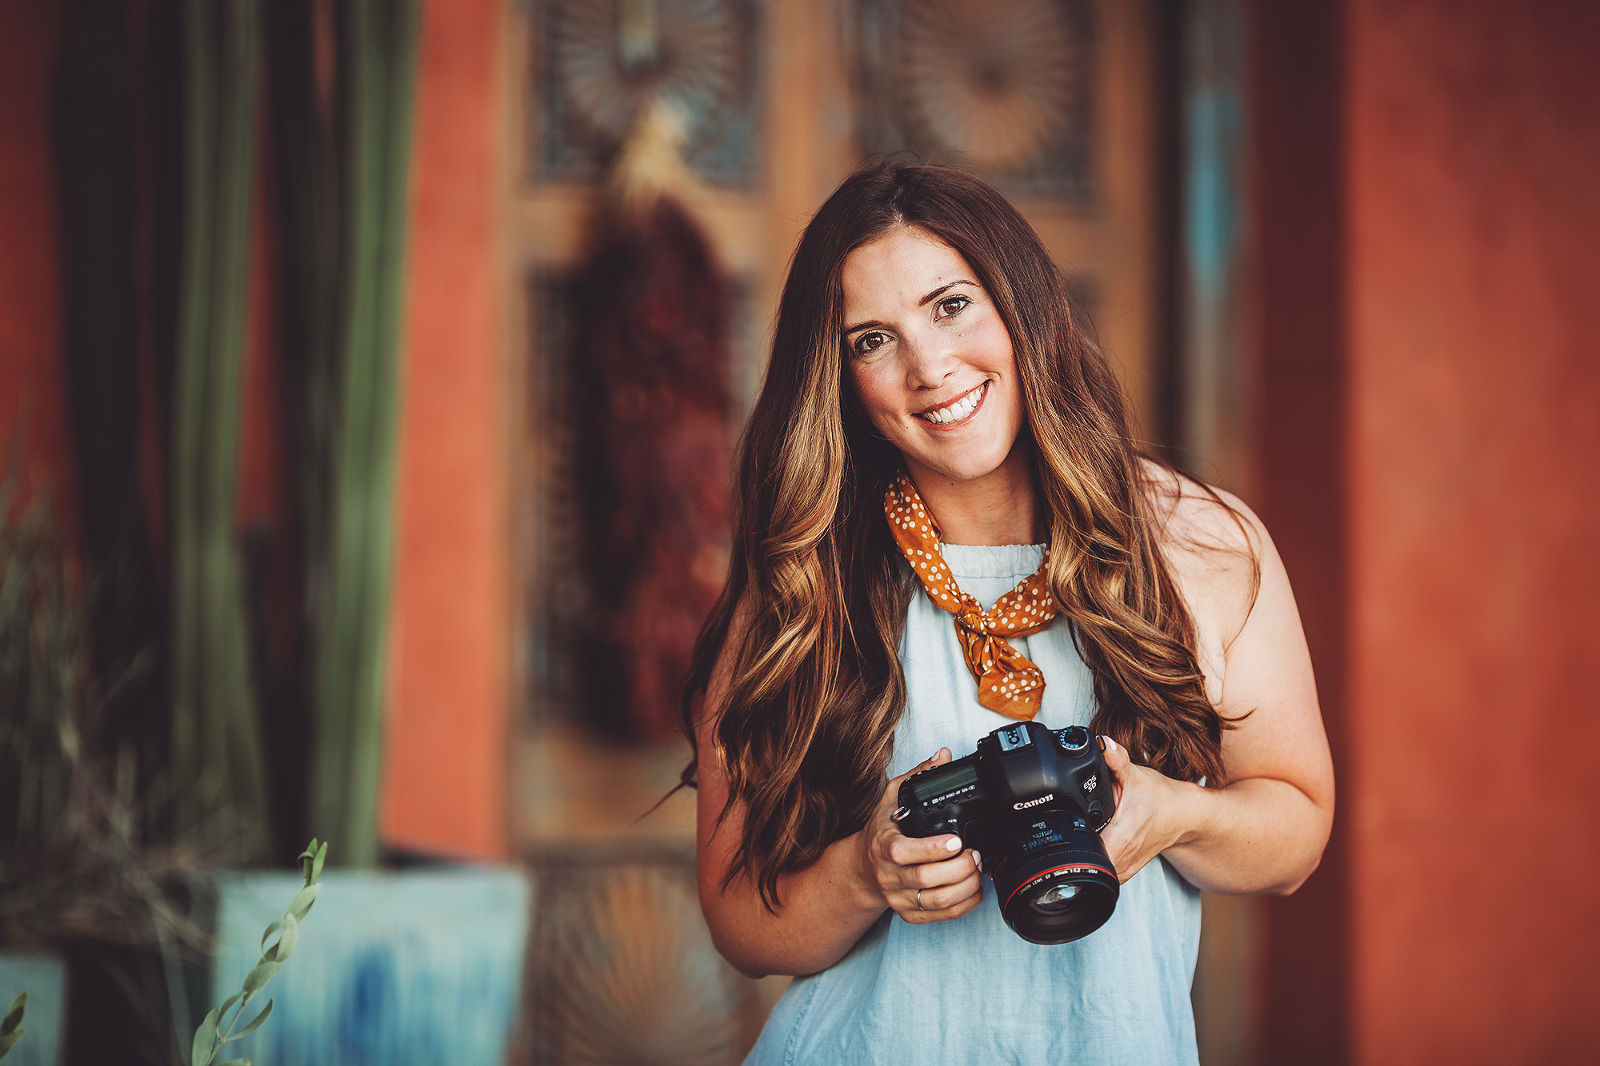 A photographer posing with her camera in a popular Tucson neighborhood during her headshot portrait session